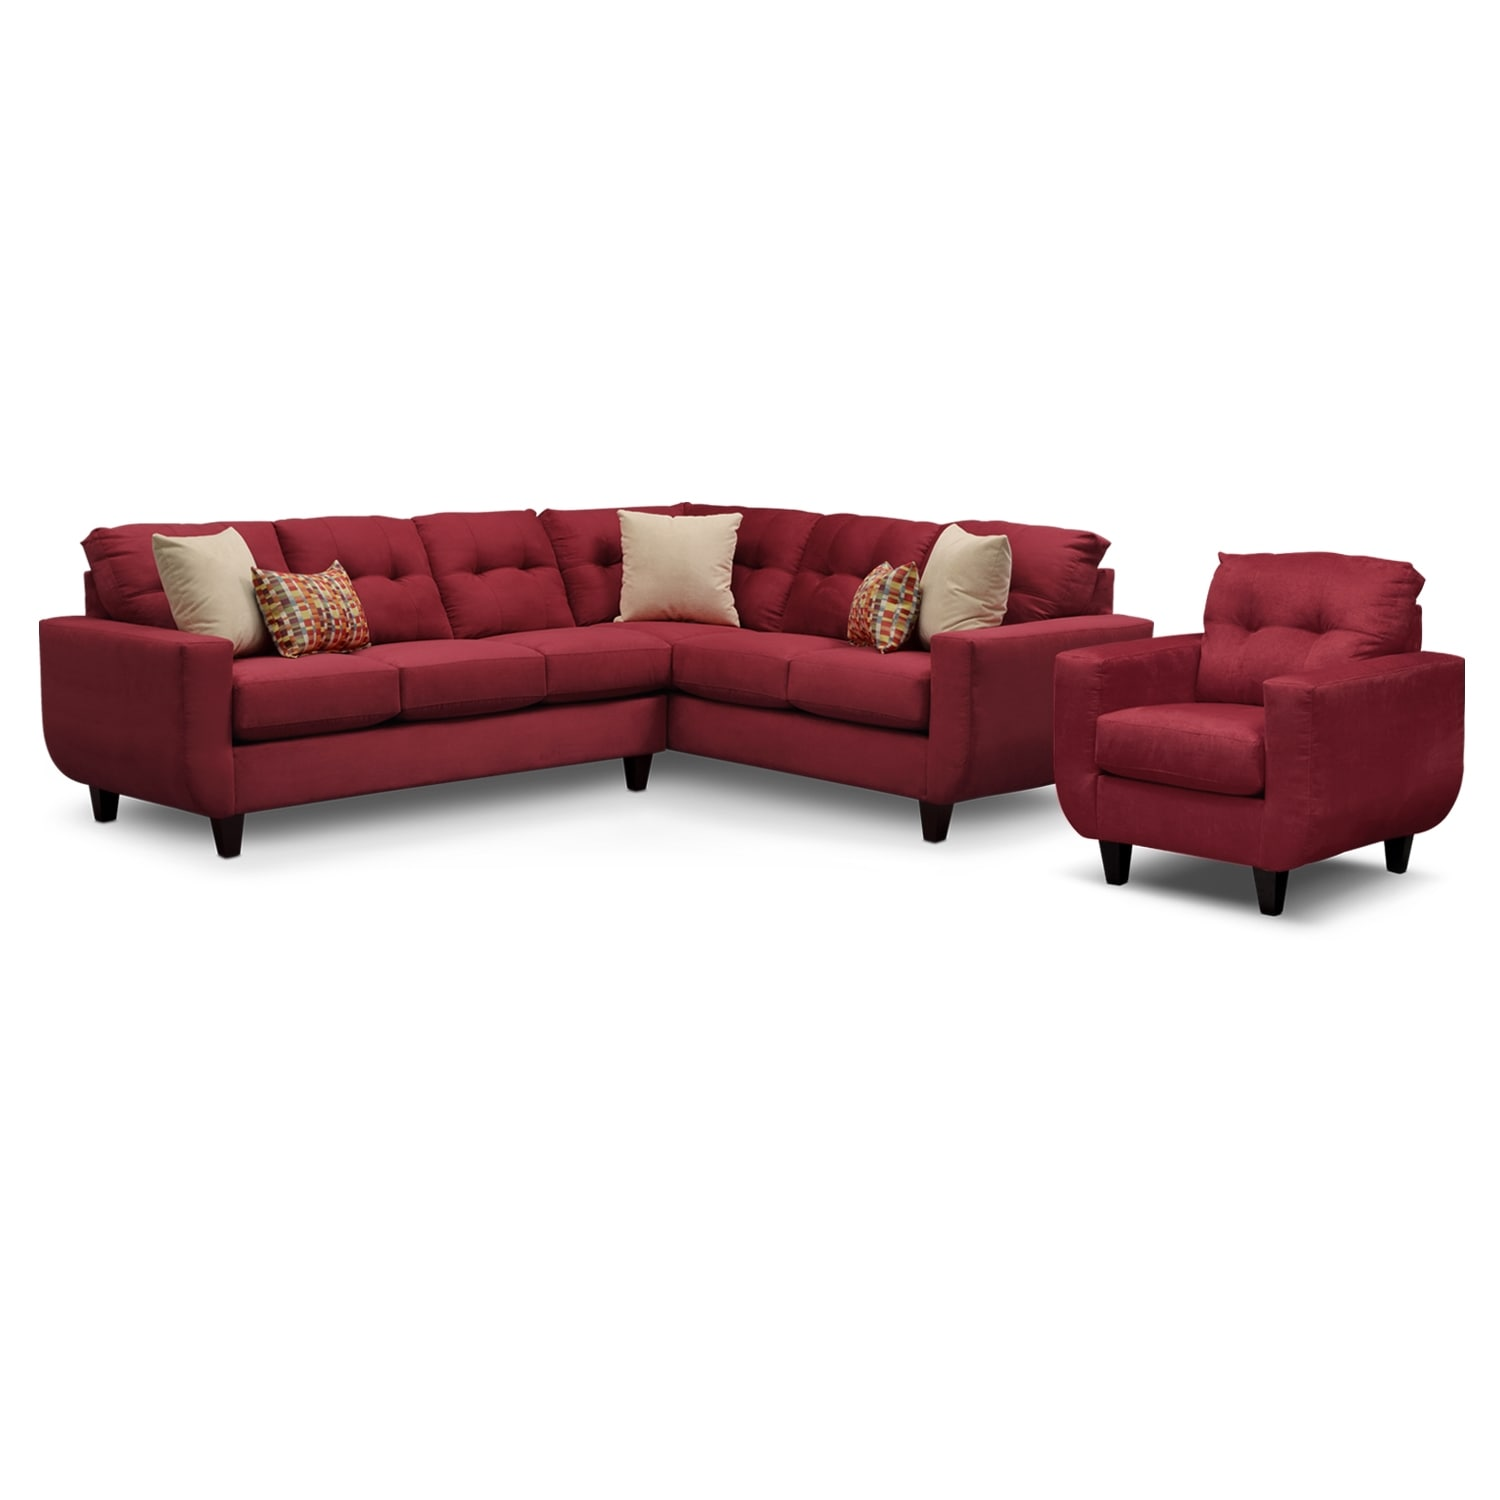 Living Room Furniture - West Village 2-Piece Sectional and Chair - Red